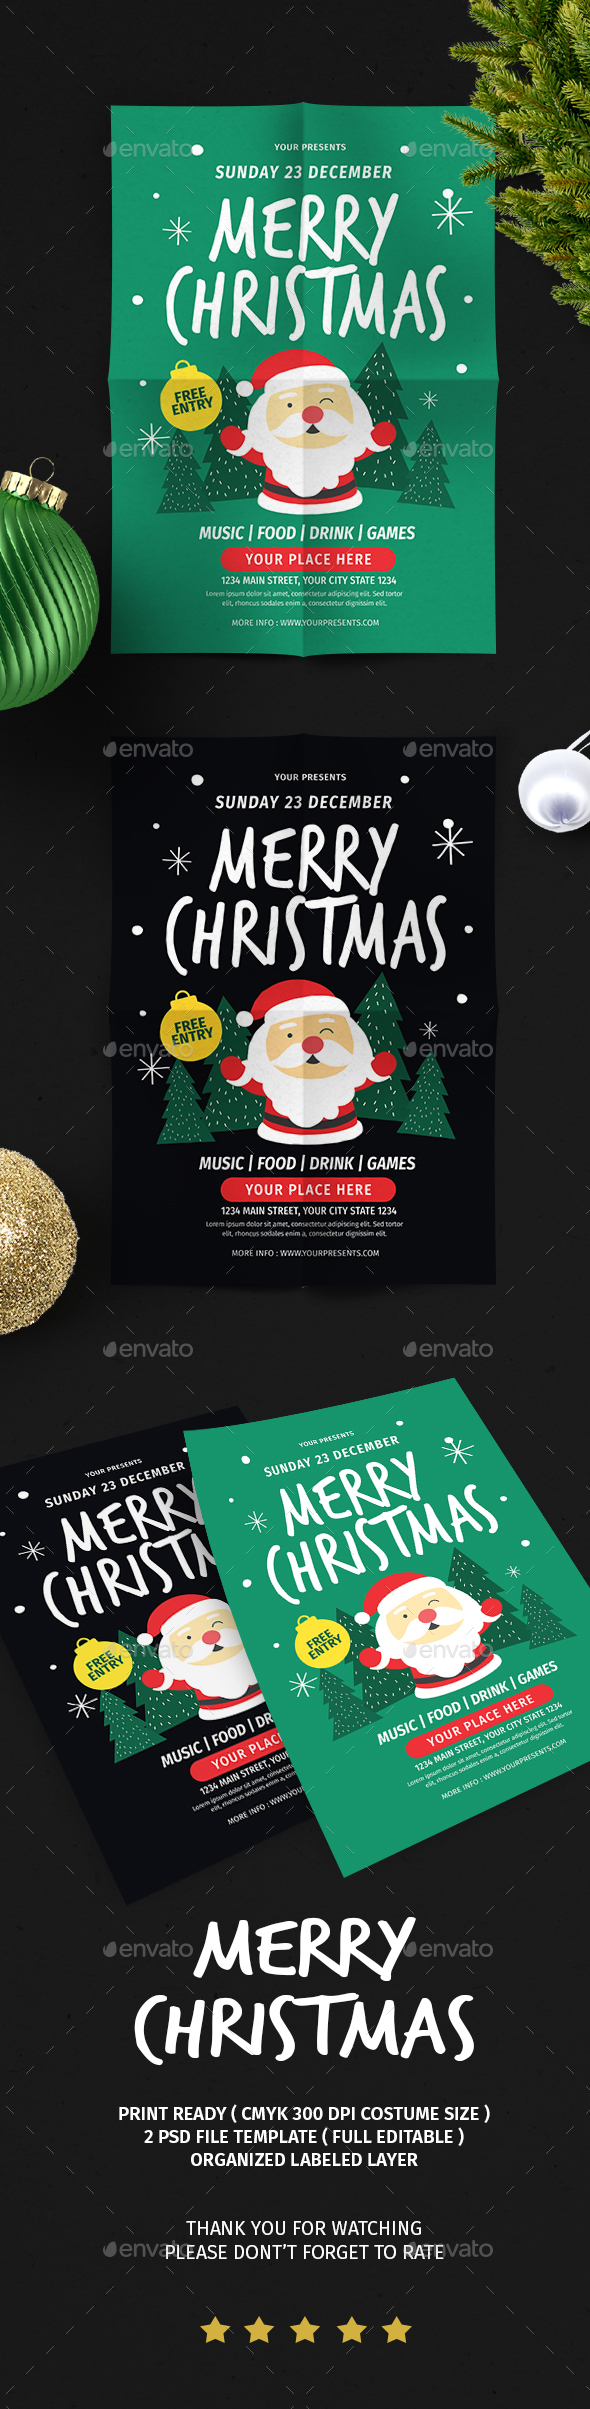 Christmas Flyer Vol.6 - Christmas Greeting Cards